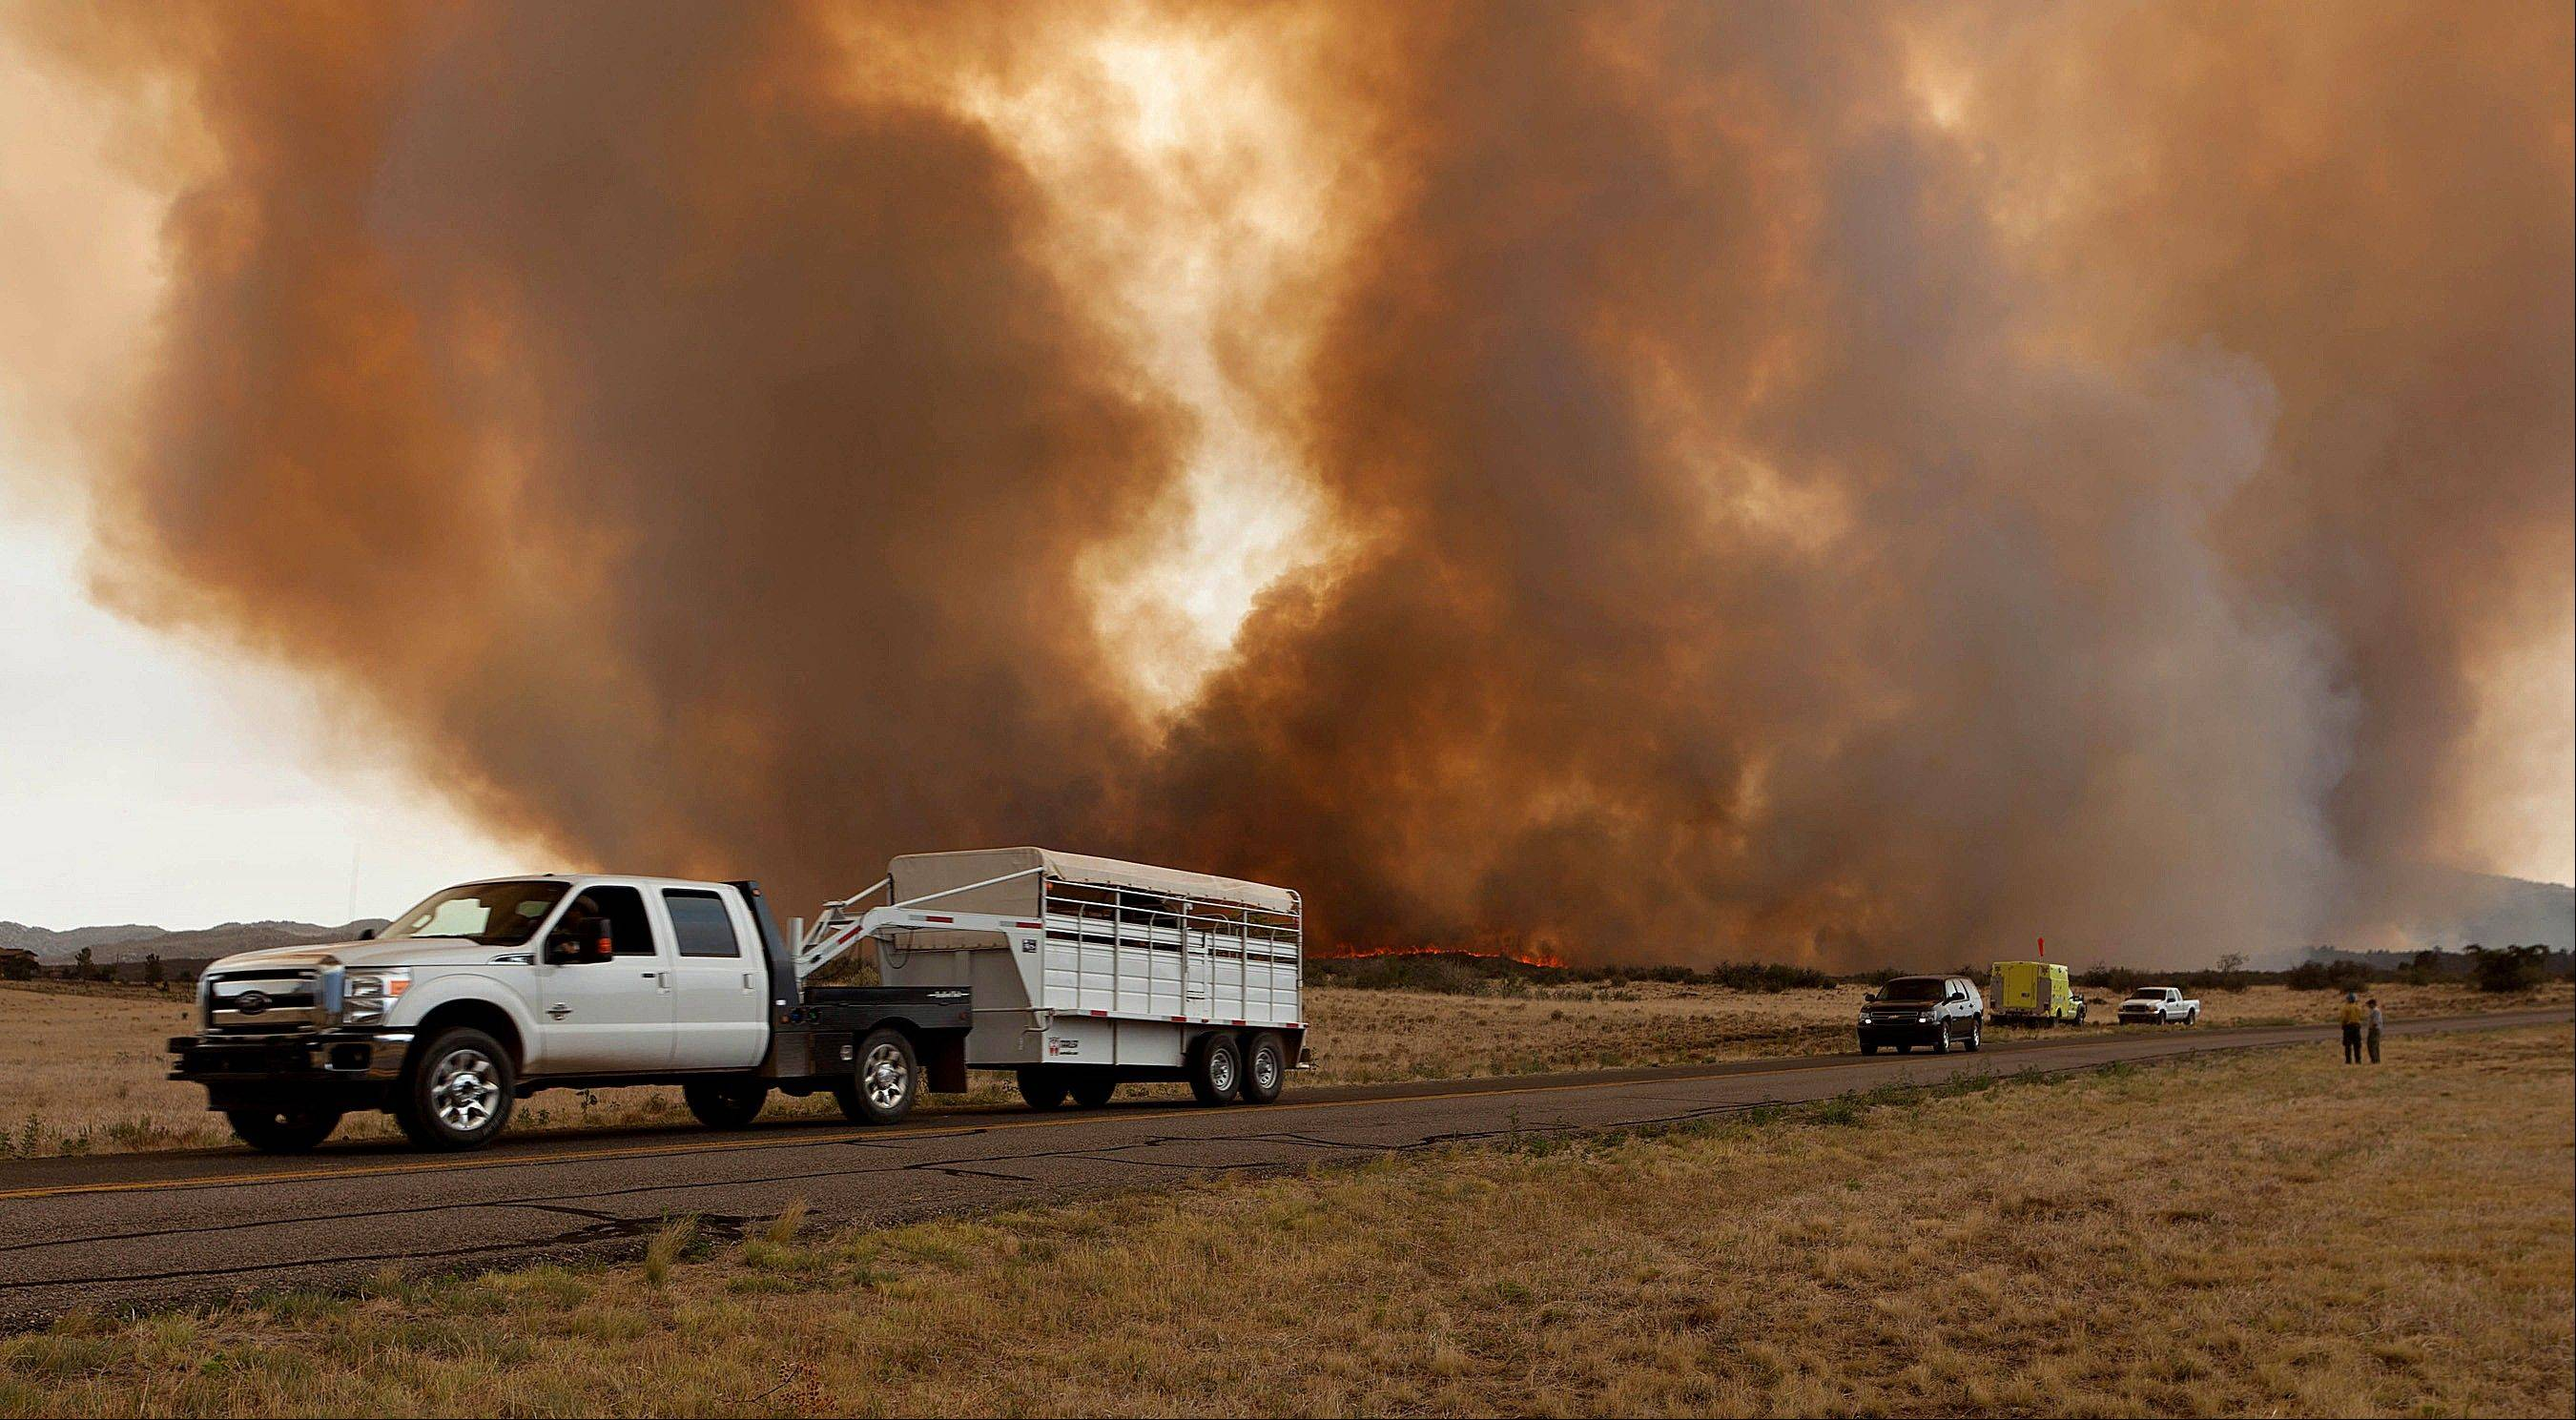 Residents evacuate along Hays Road in Peeples Valley, Ariz. as the Yarnell Hill Fire advances on Sunday, June 30, 2013. The fire started Friday and picked up momentum as the area experienced high temperatures, low humidity and windy conditions. It has forced the evacuation of residents in the Peeples Valley area and in the town of Yarnell.